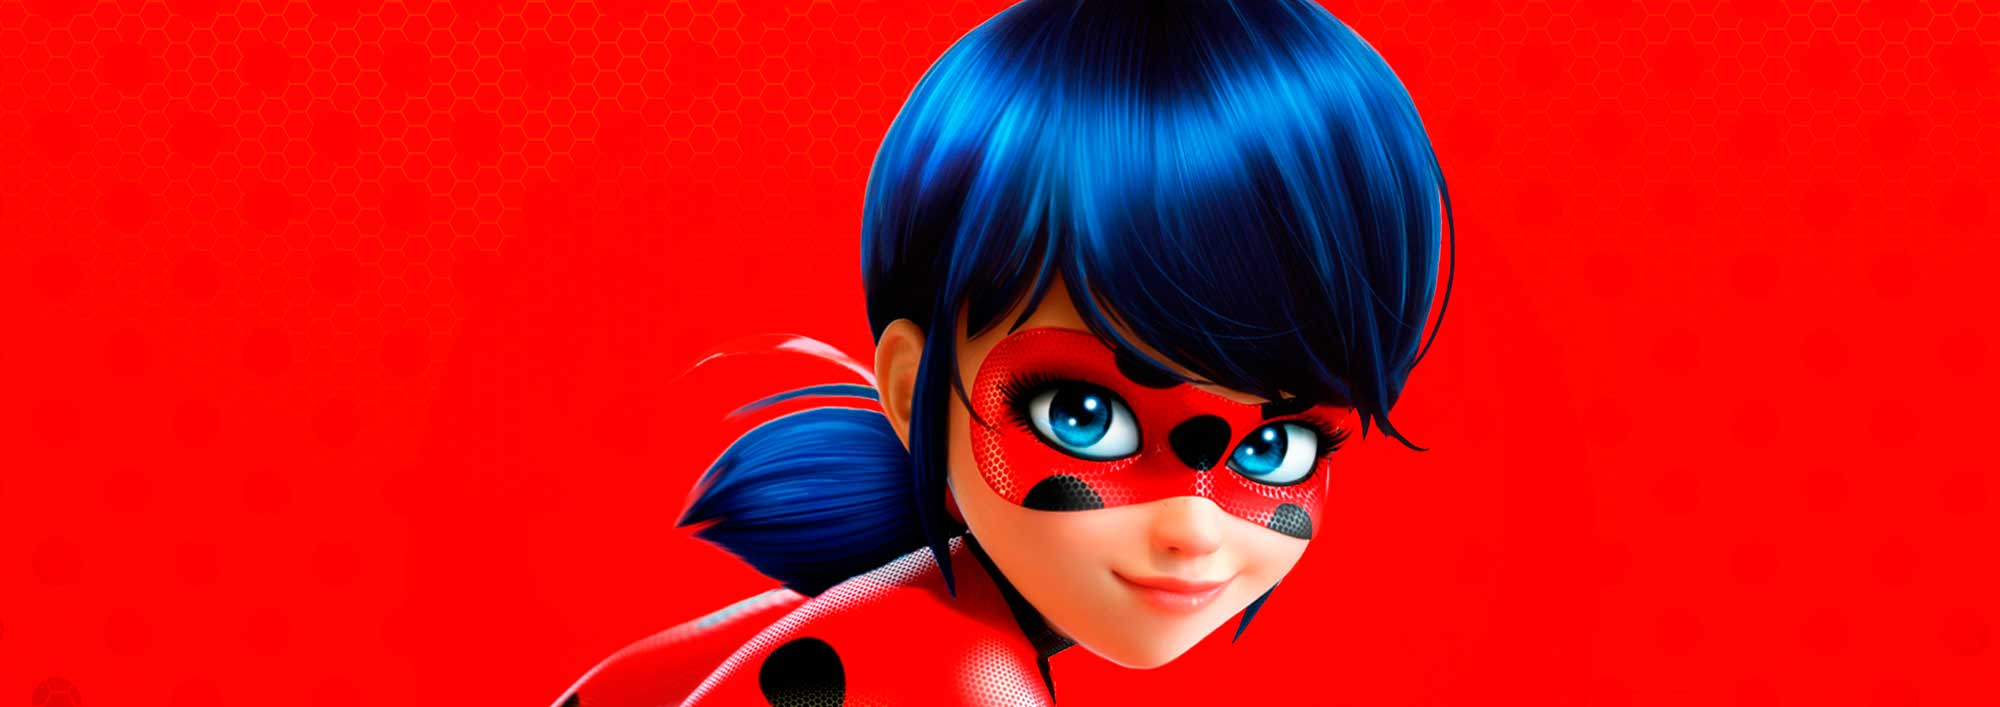 1000+ Images About Lady Bug Aventura On Pinterest